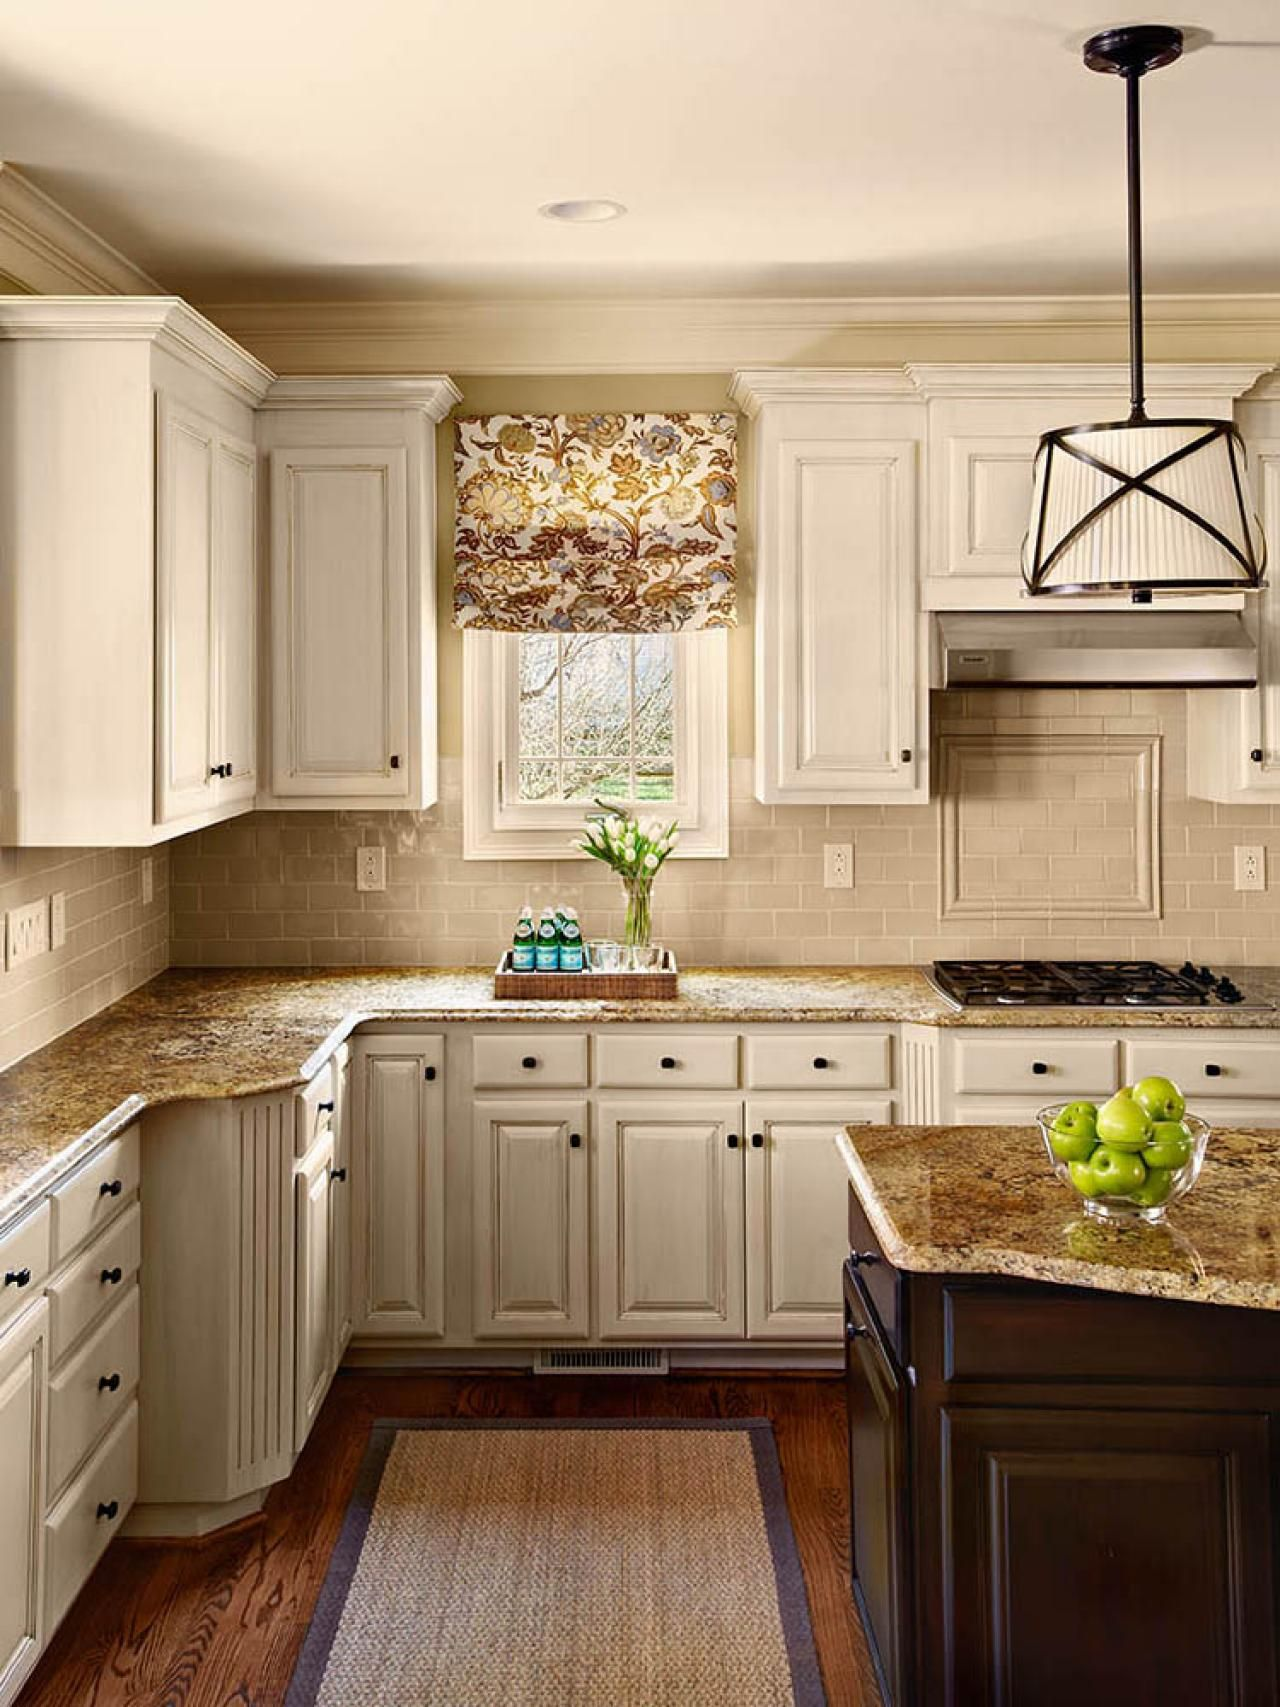 resurfacing kitchen cabinets pictures u0026 ideas from picture